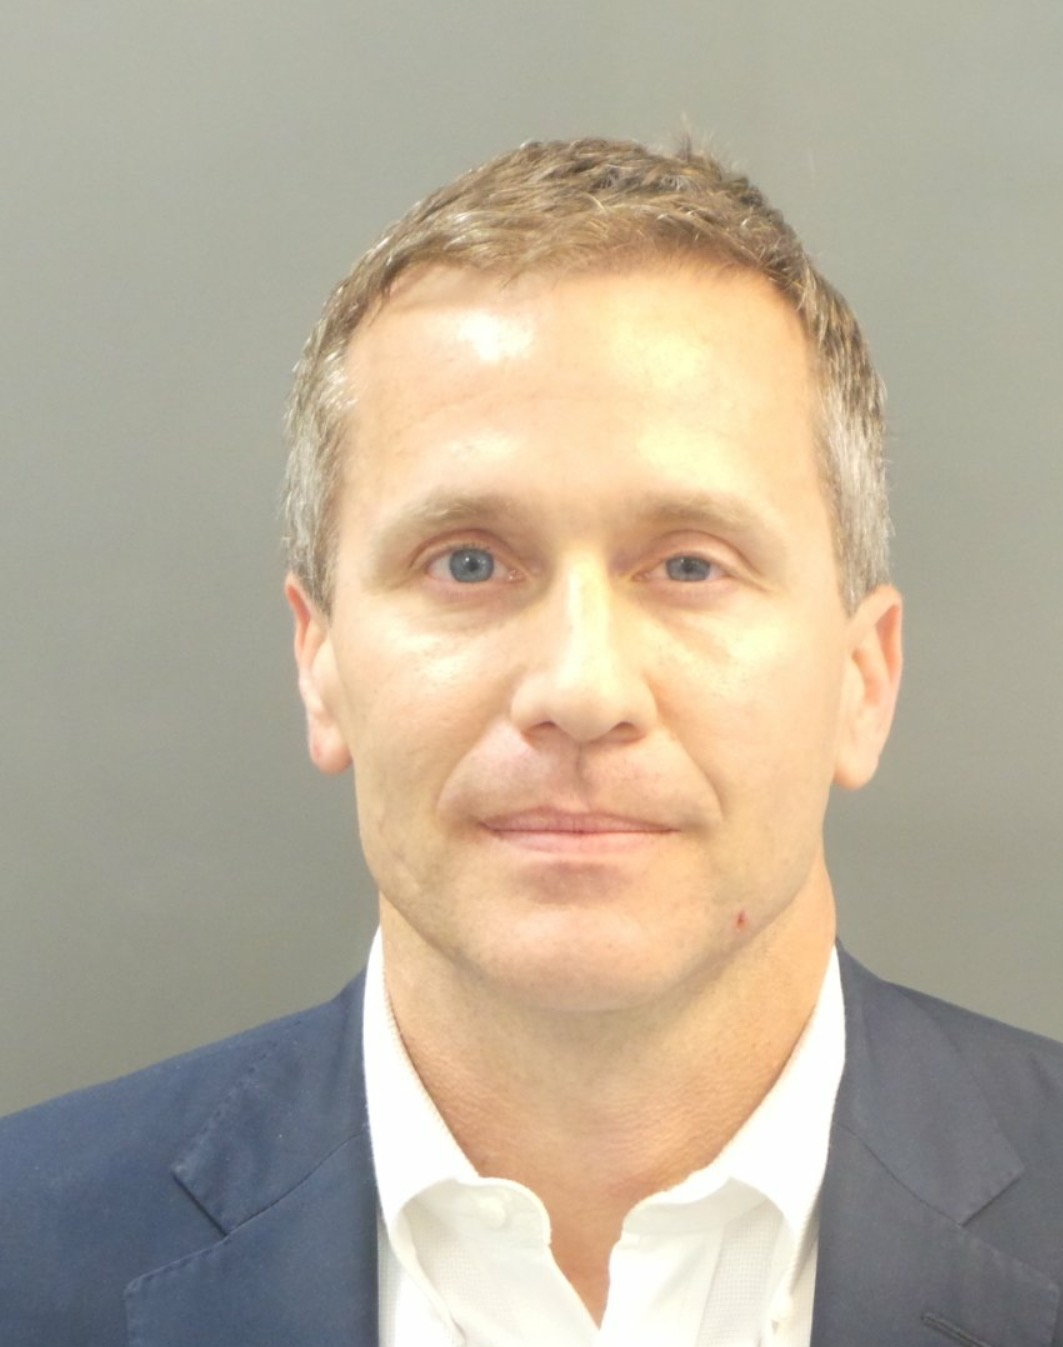 Ex-lover of Missouri Gov. Greitens says 'attractive train' encounter was nonconsensual